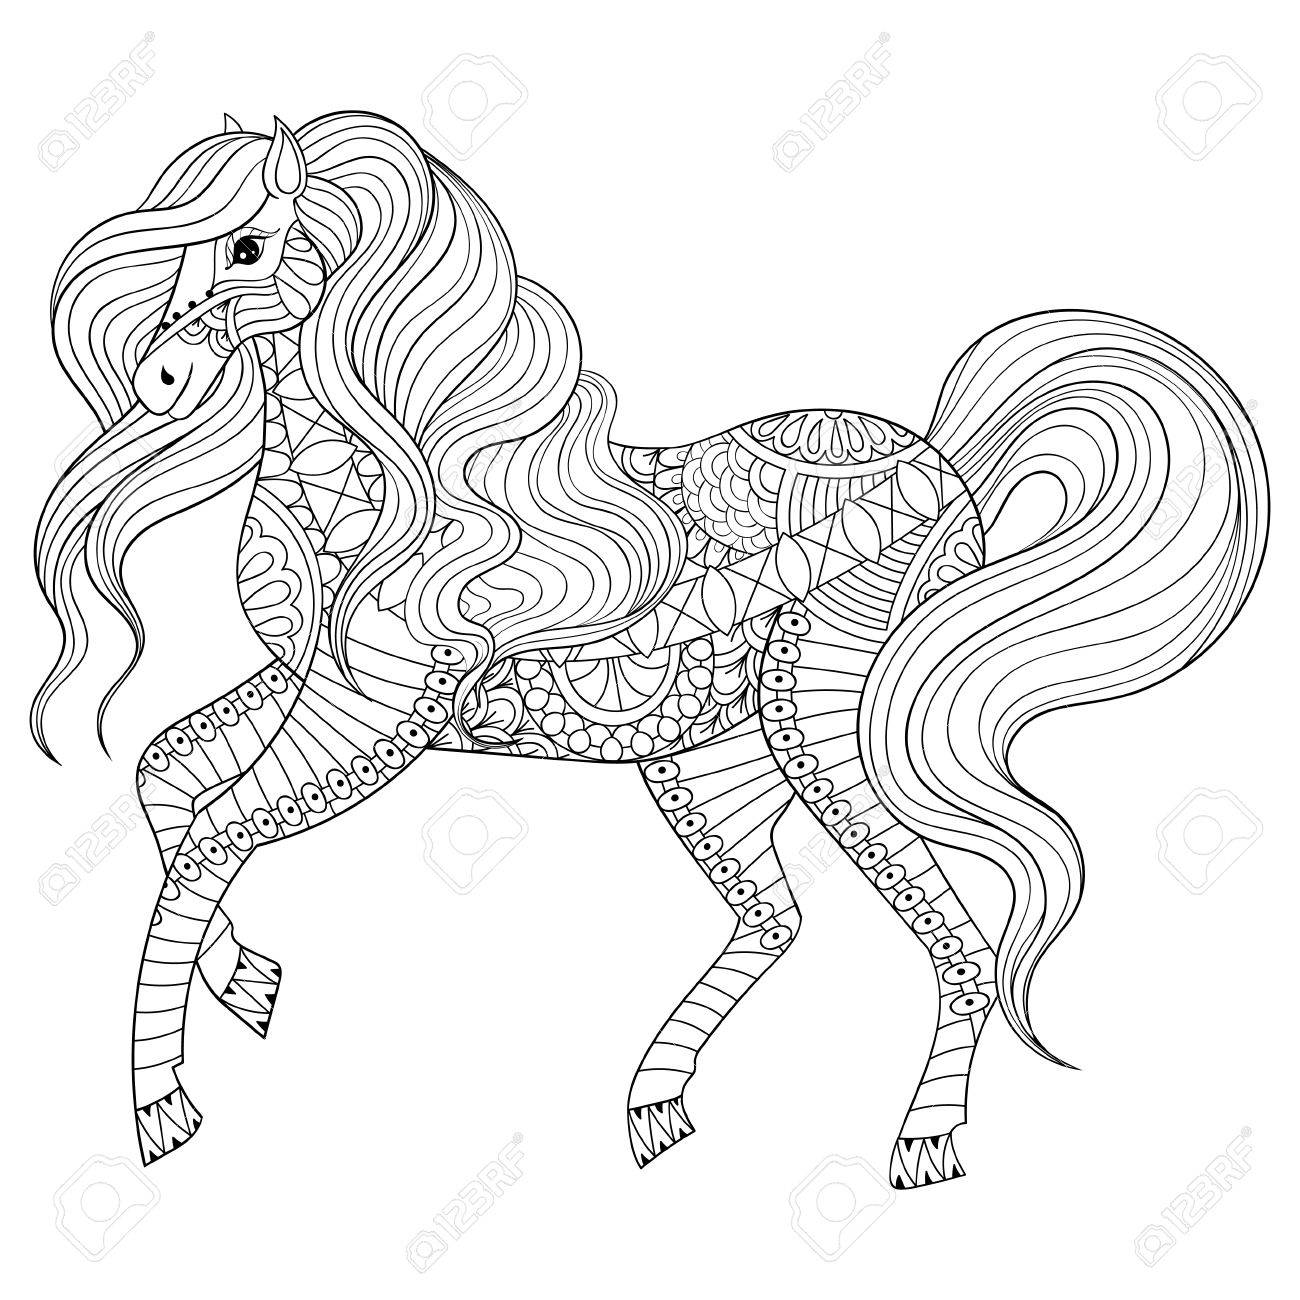 Adulte Coloriage Anti Stress A Cheval Hand Drawn Animaux Zentangle Pour Livre De Coloriage Art Therapie Carte De Voeux Element De Decoration